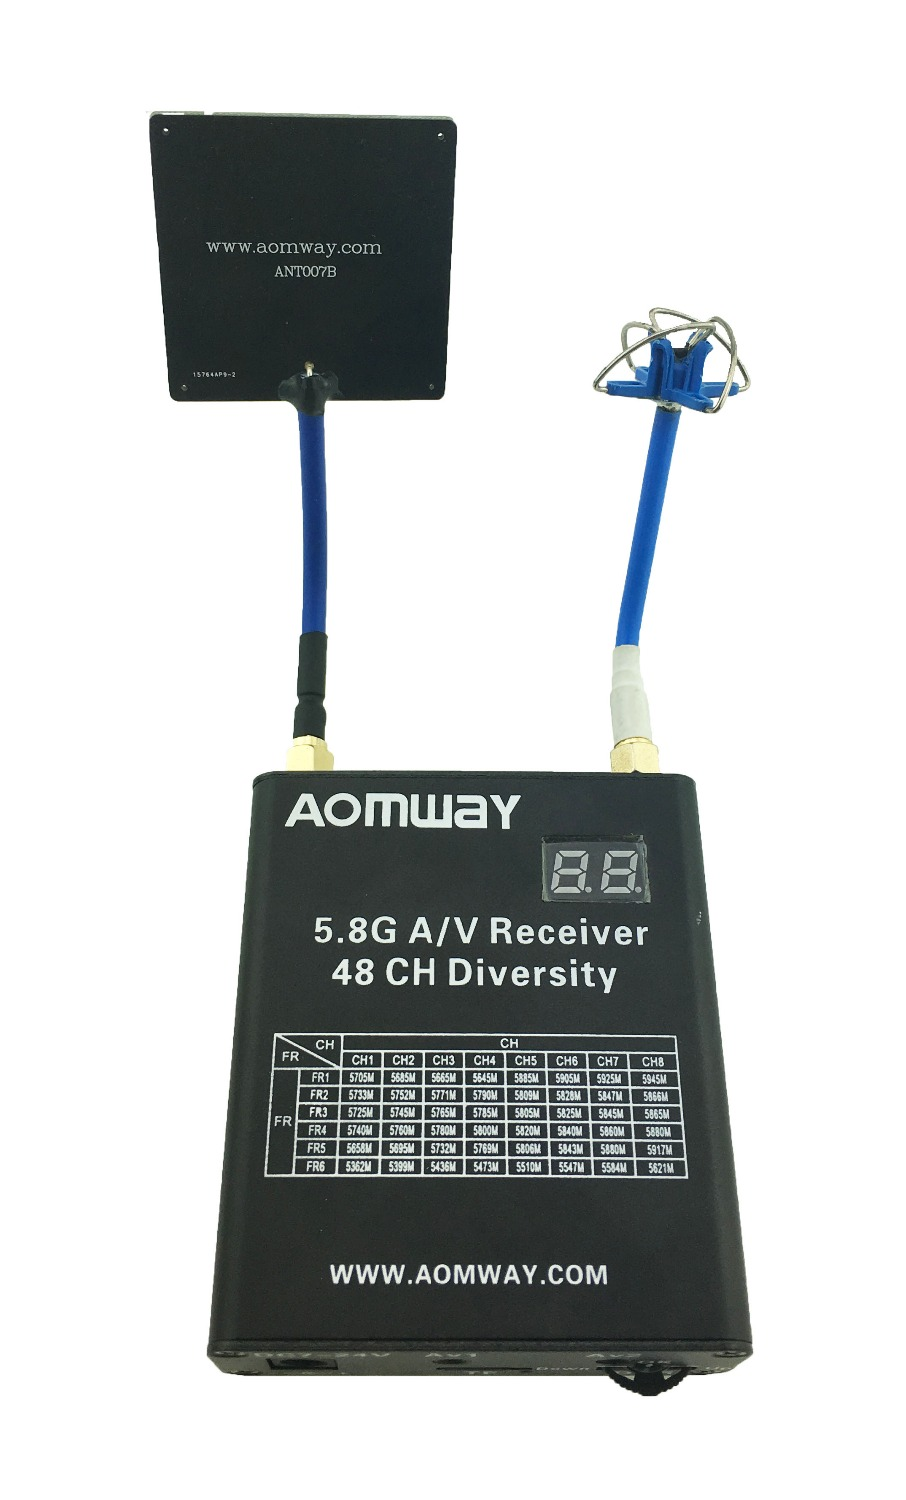 Aomway 5.8G 48CH Audio Video AV 5.8G Dual Receiver DVR Diversity Double RX with 6dbi Antenna Pancel for Multicopter Photography hot new aomway rx006 dvr 5 8g 48ch diversity raceband a v receiver with built in video recorder